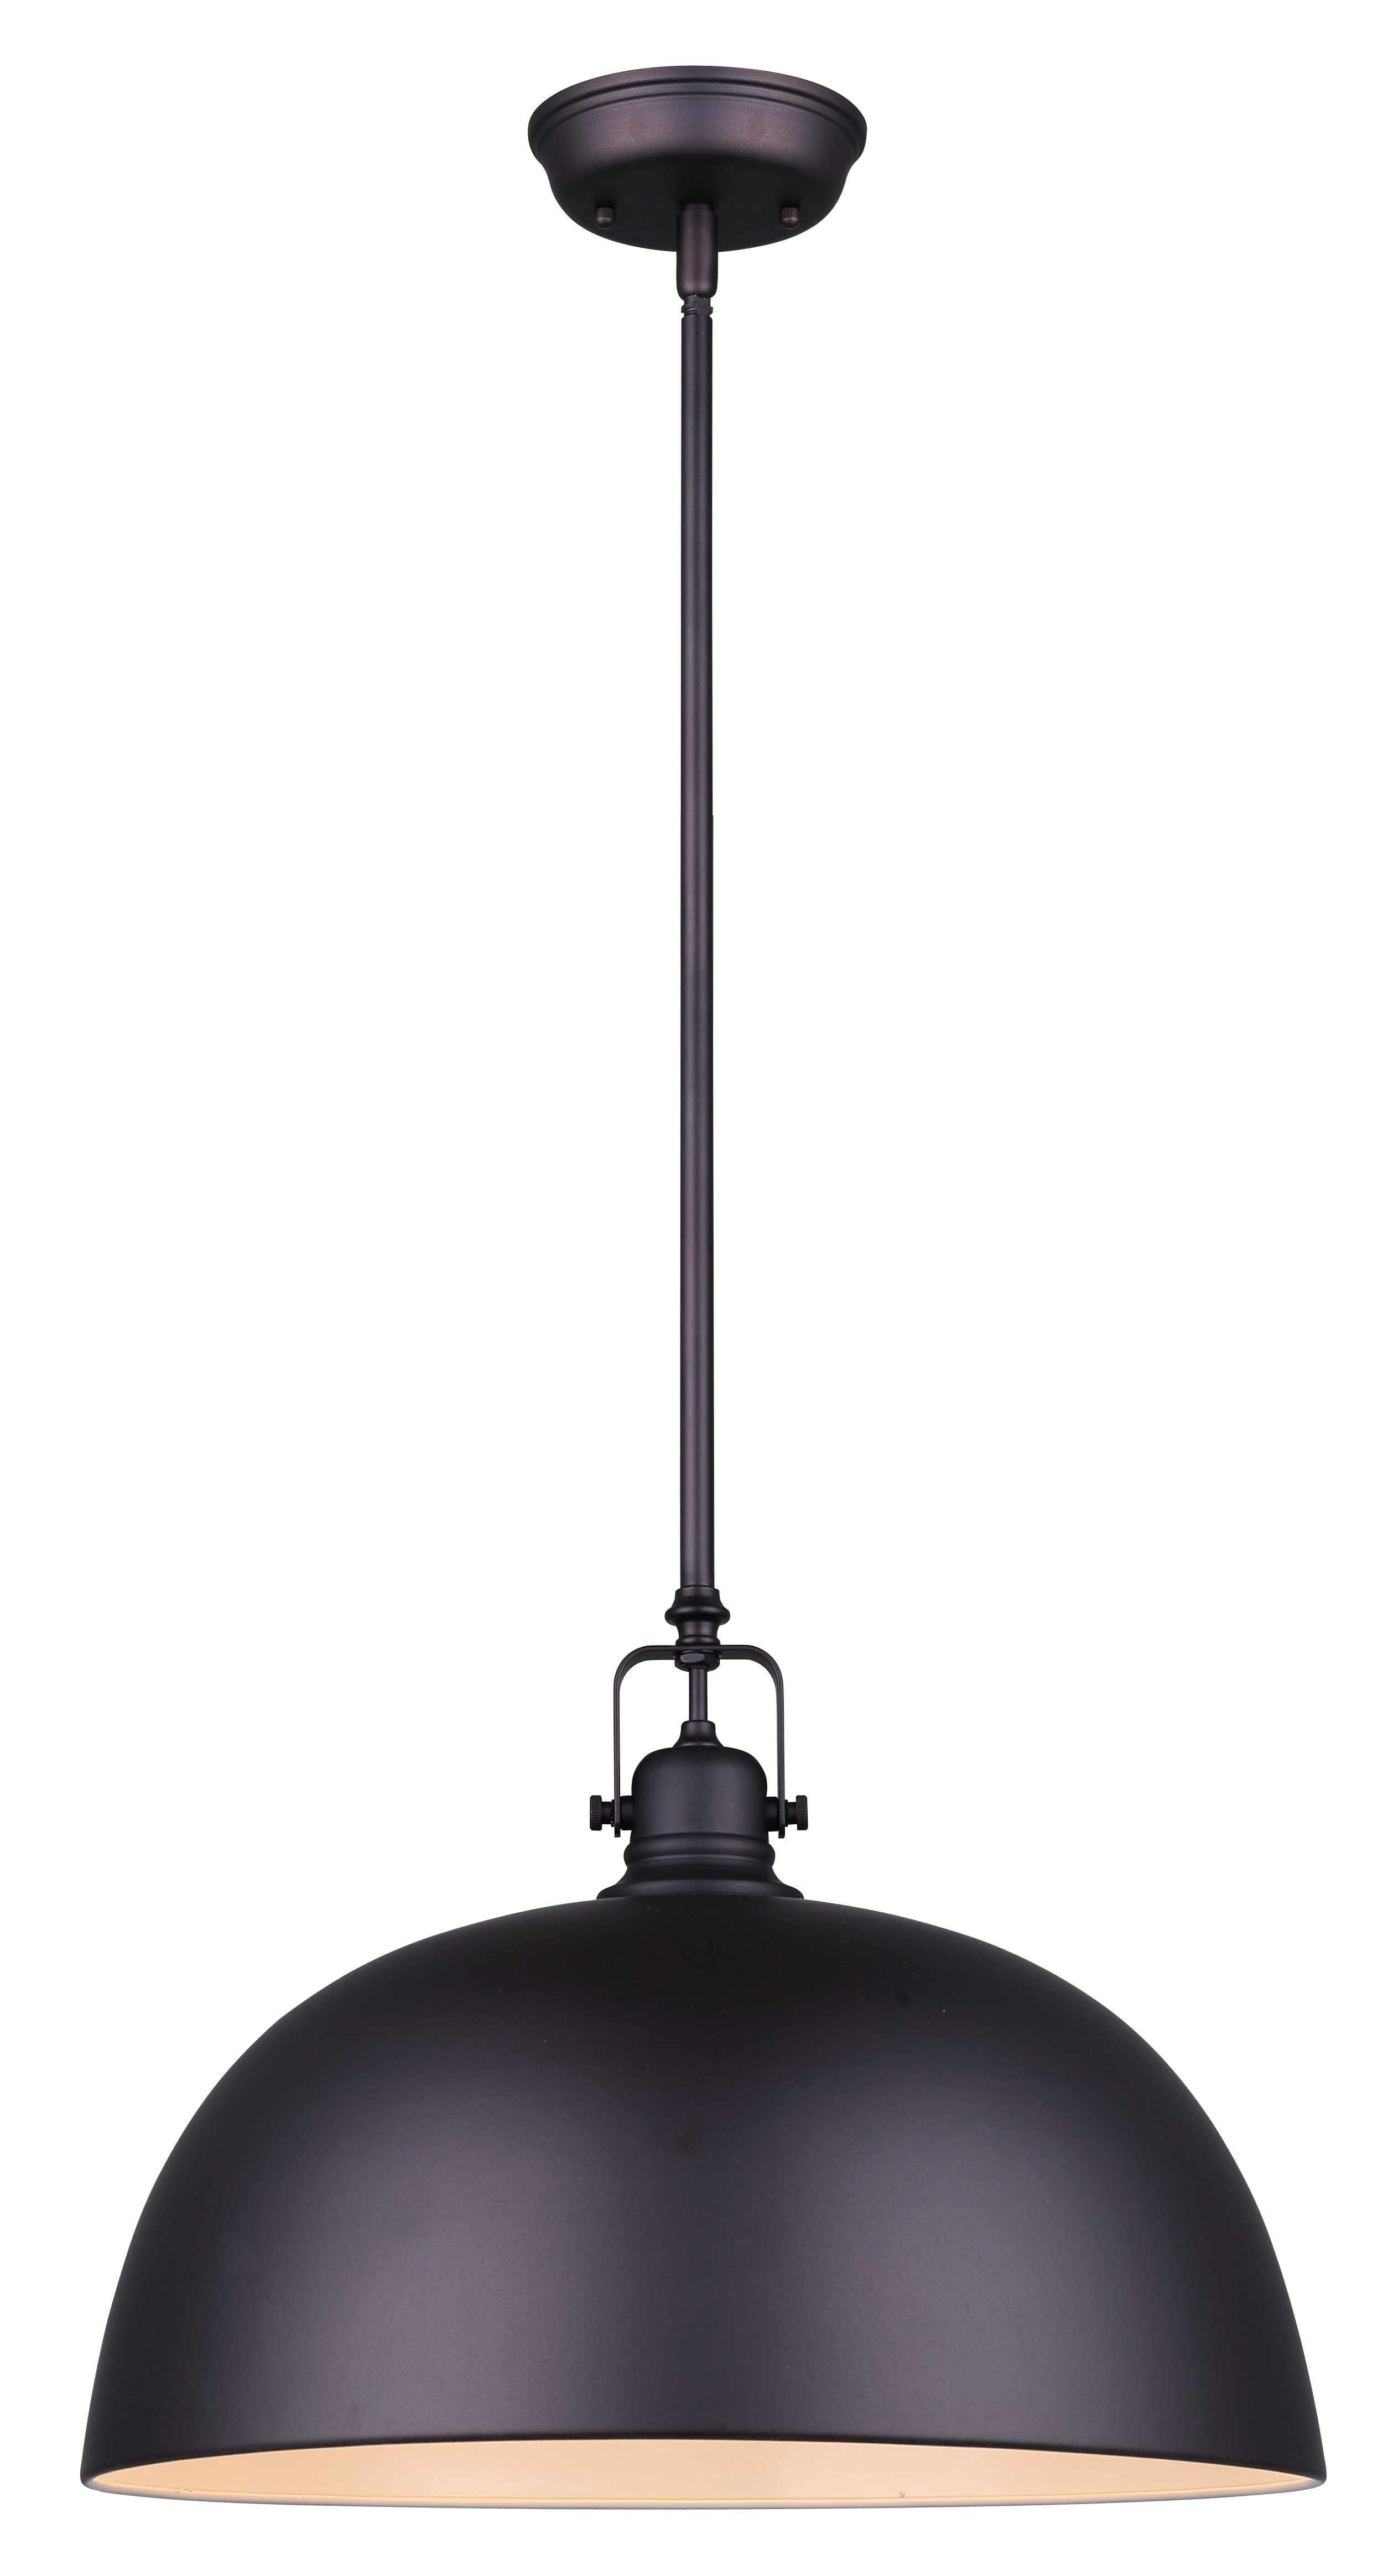 Southlake 1 Light Single Dome Pendant With Regard To Abernathy 1 Light Dome Pendants (Image 27 of 30)